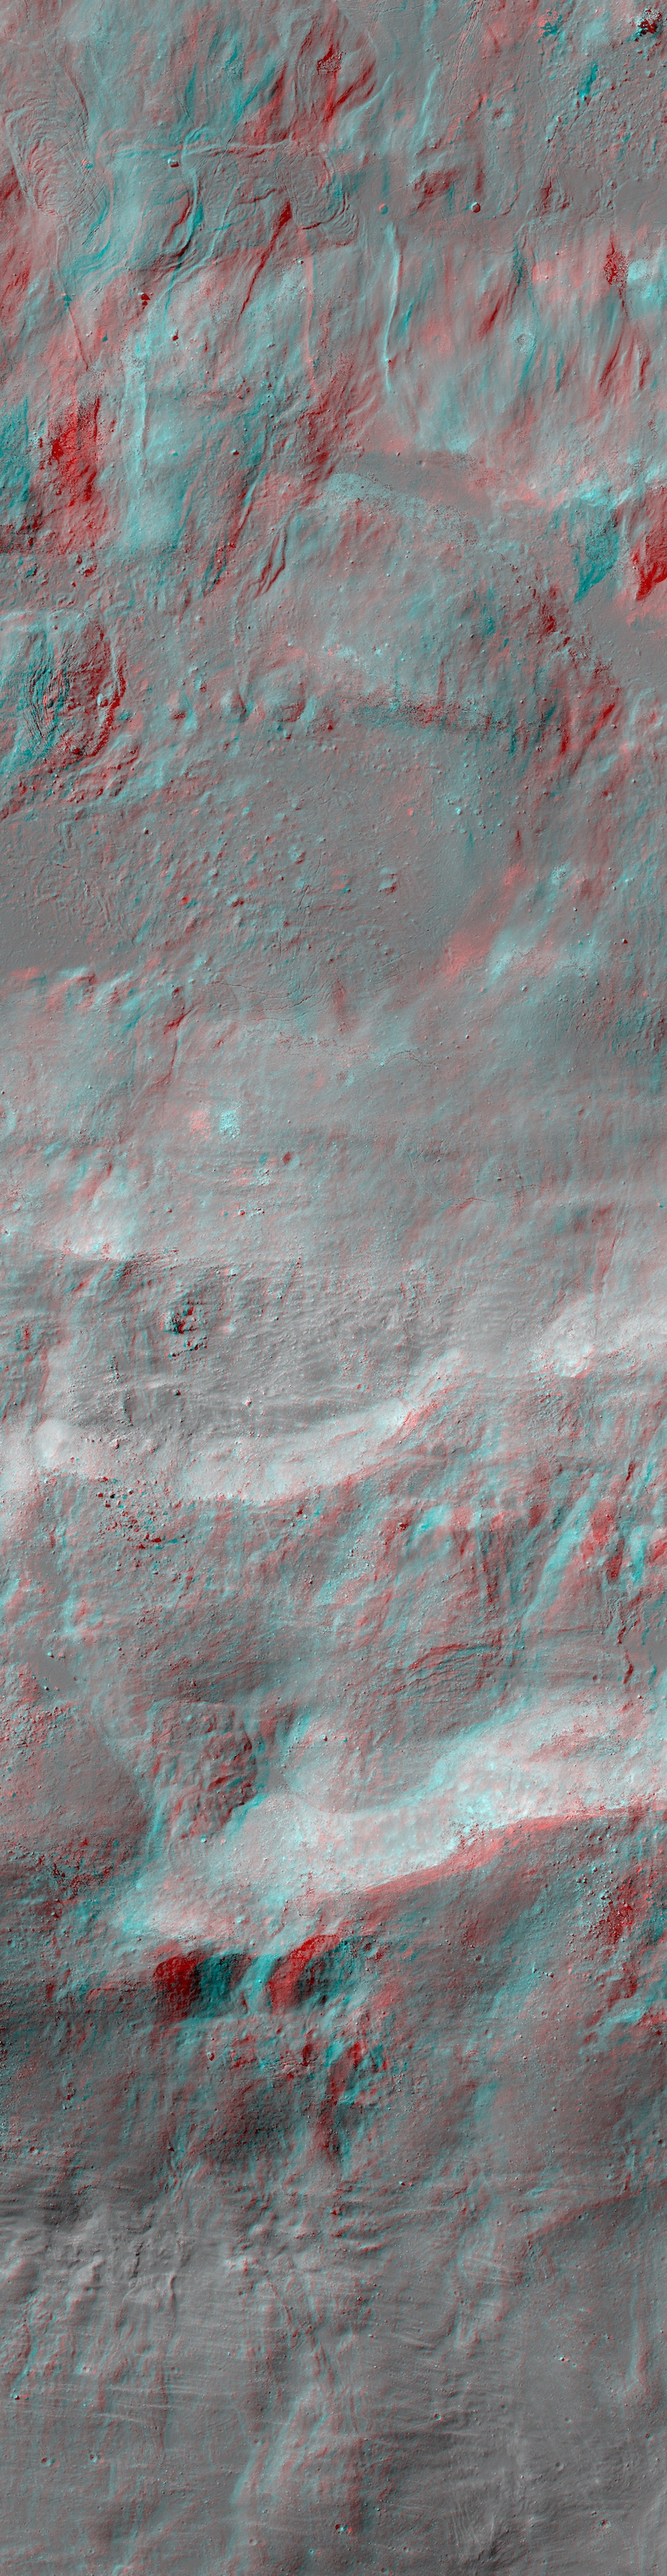 red-blue 3D look at rough lunar terrain